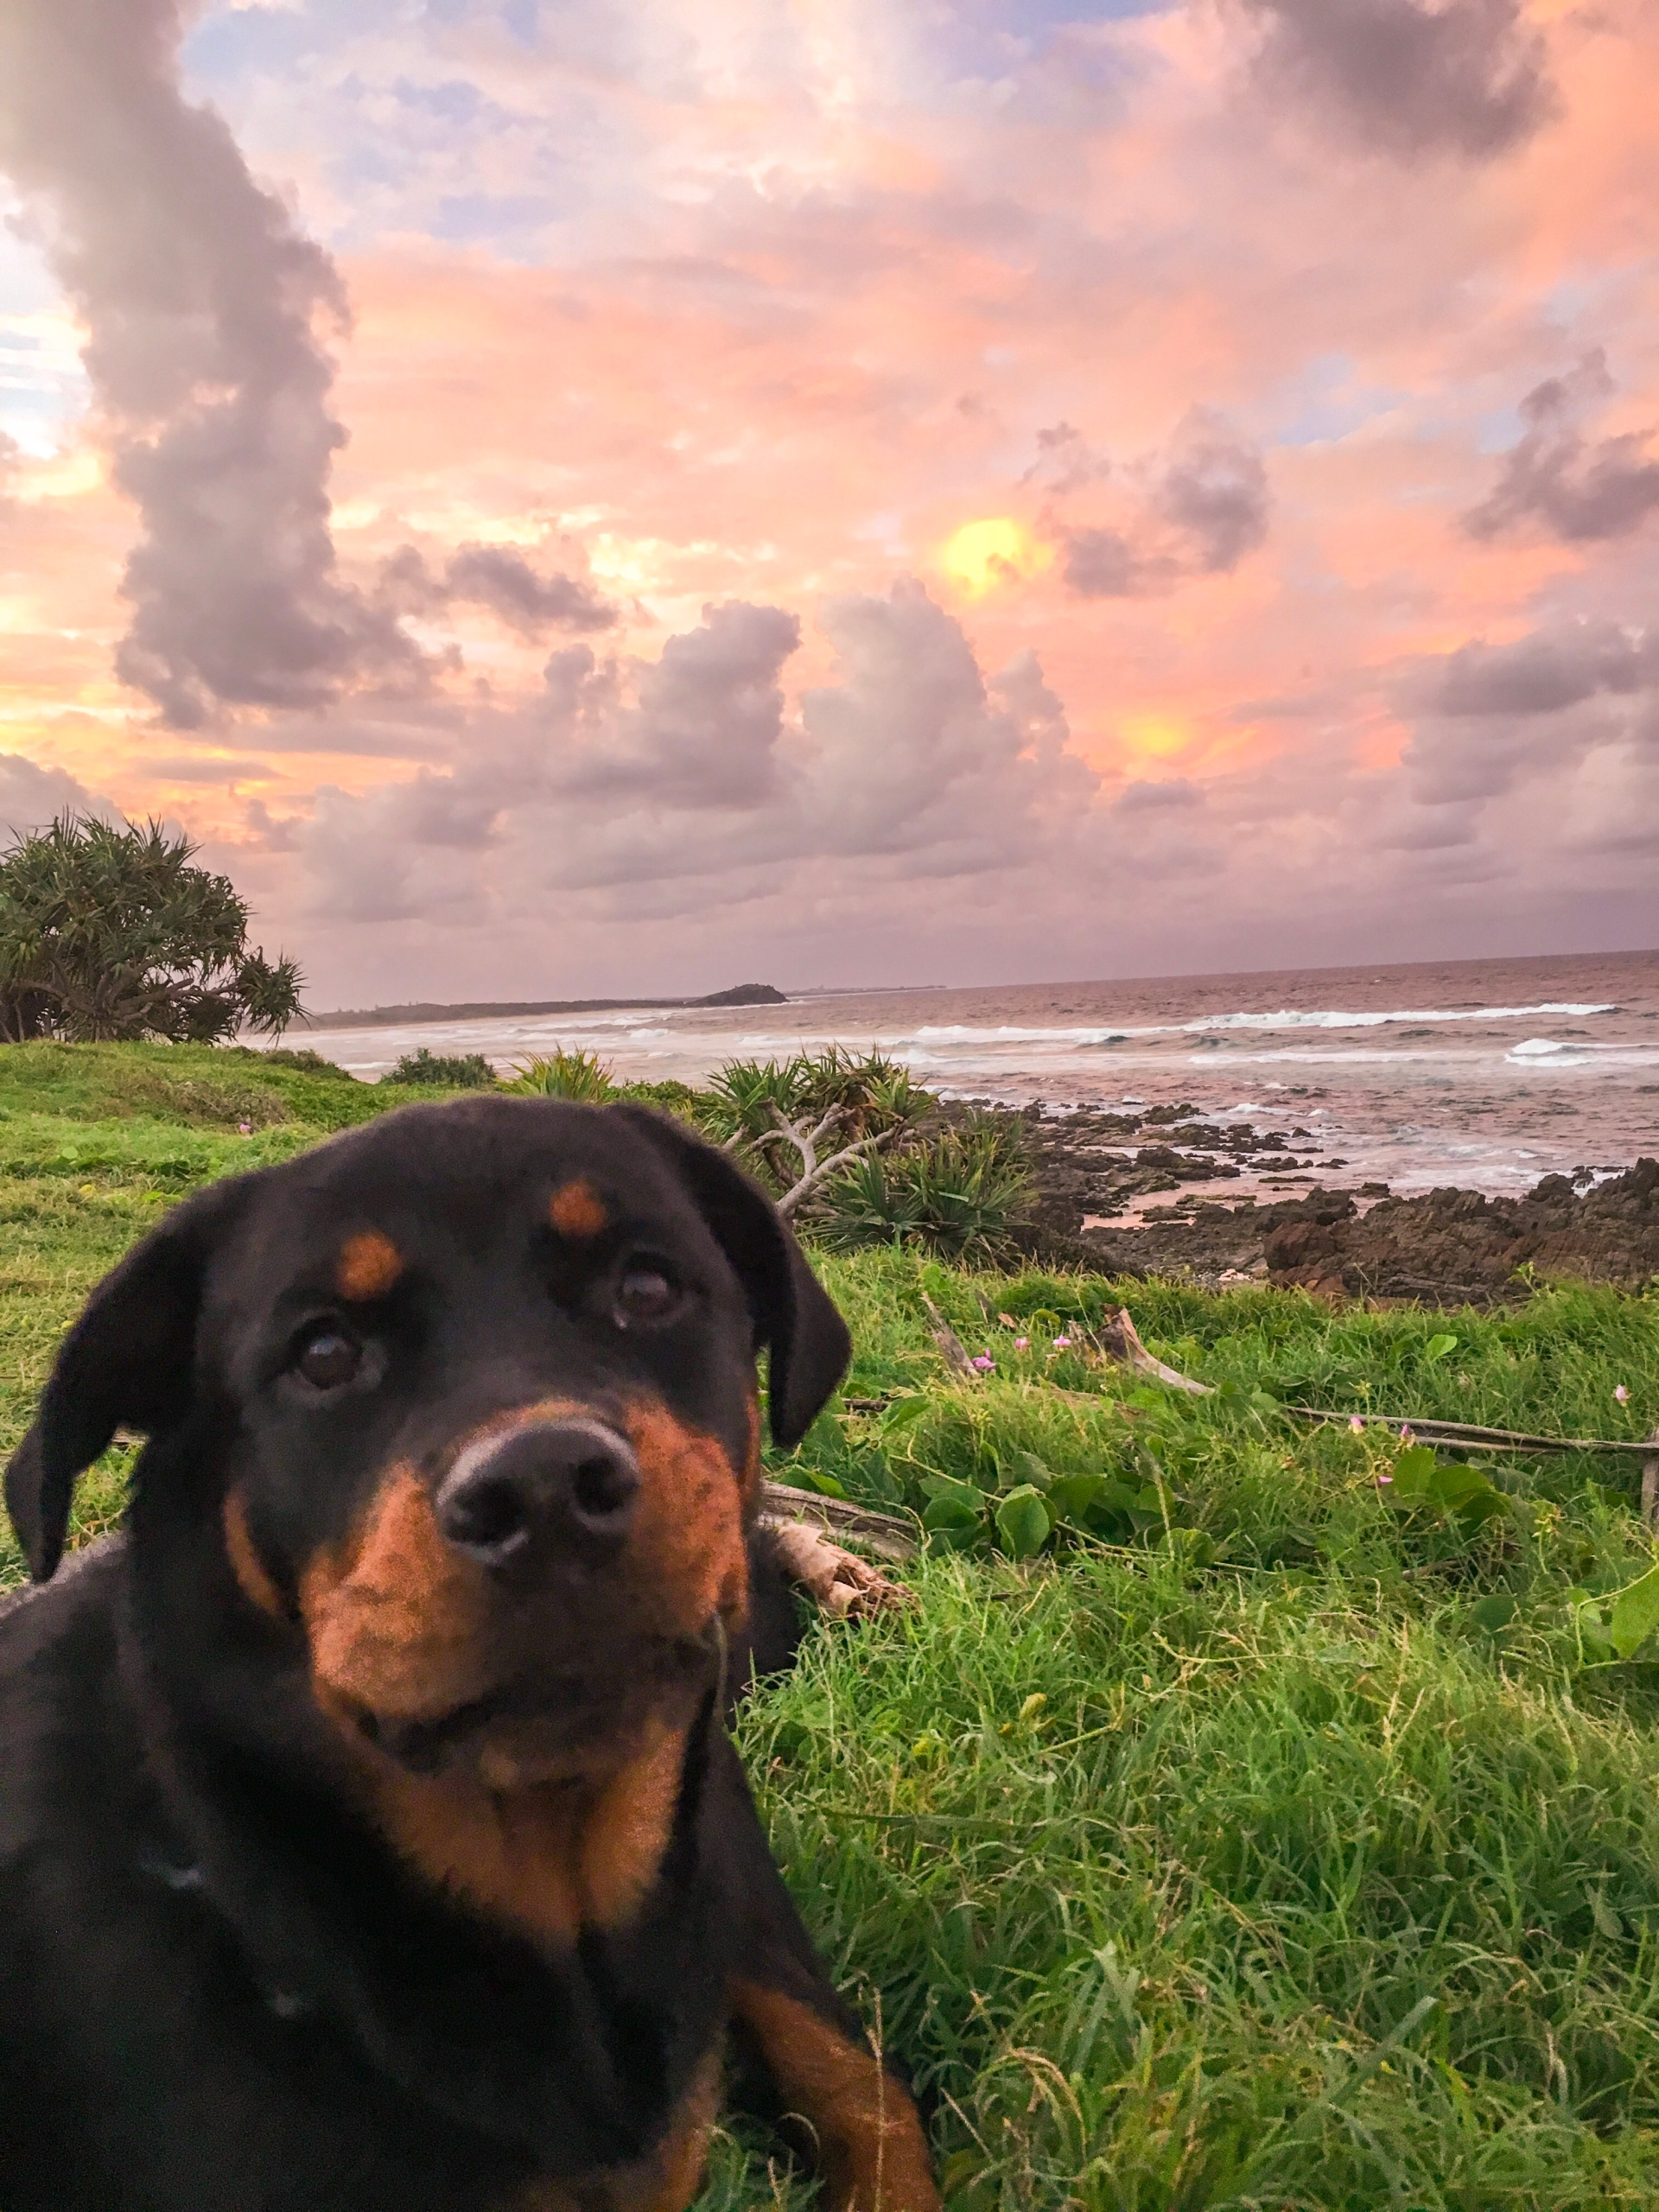 Rottweiler puppy enjoying the pink sunset at Cabarita beach